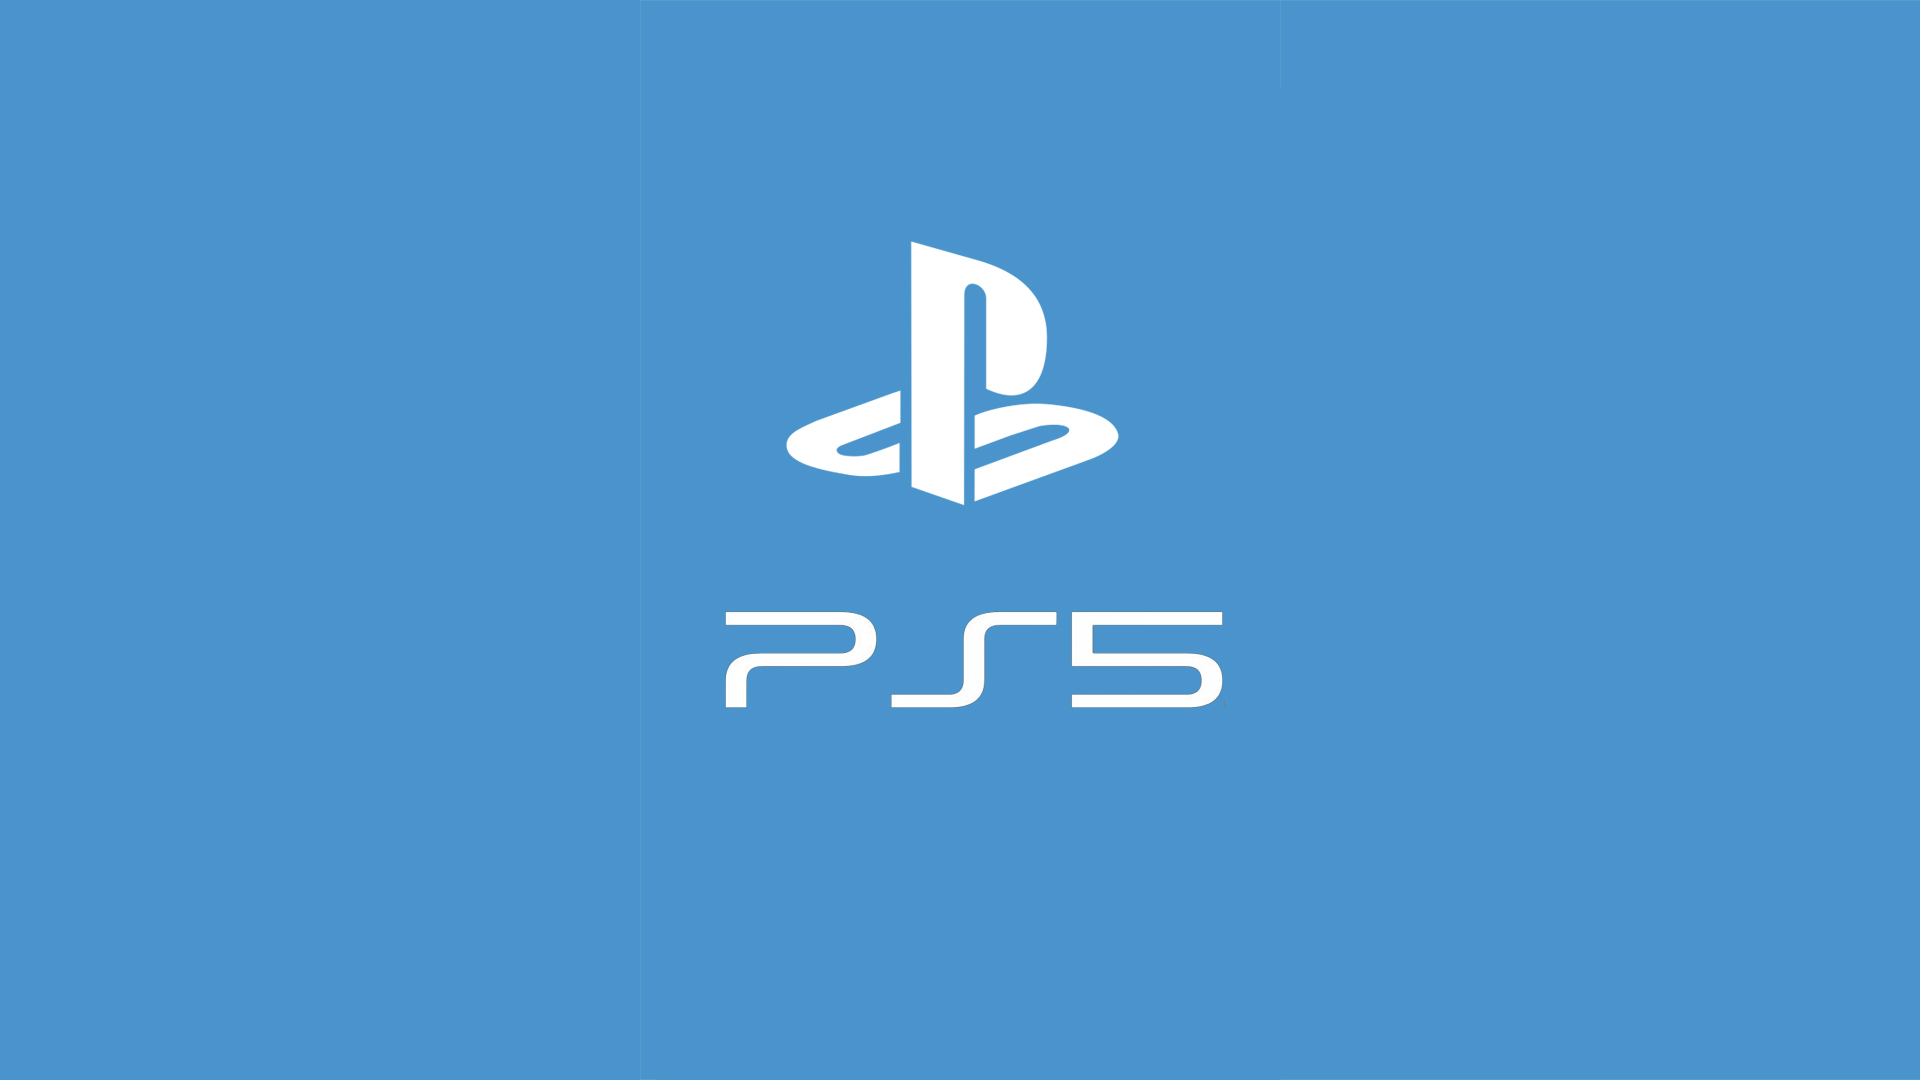 PS5 / PlayStation 5